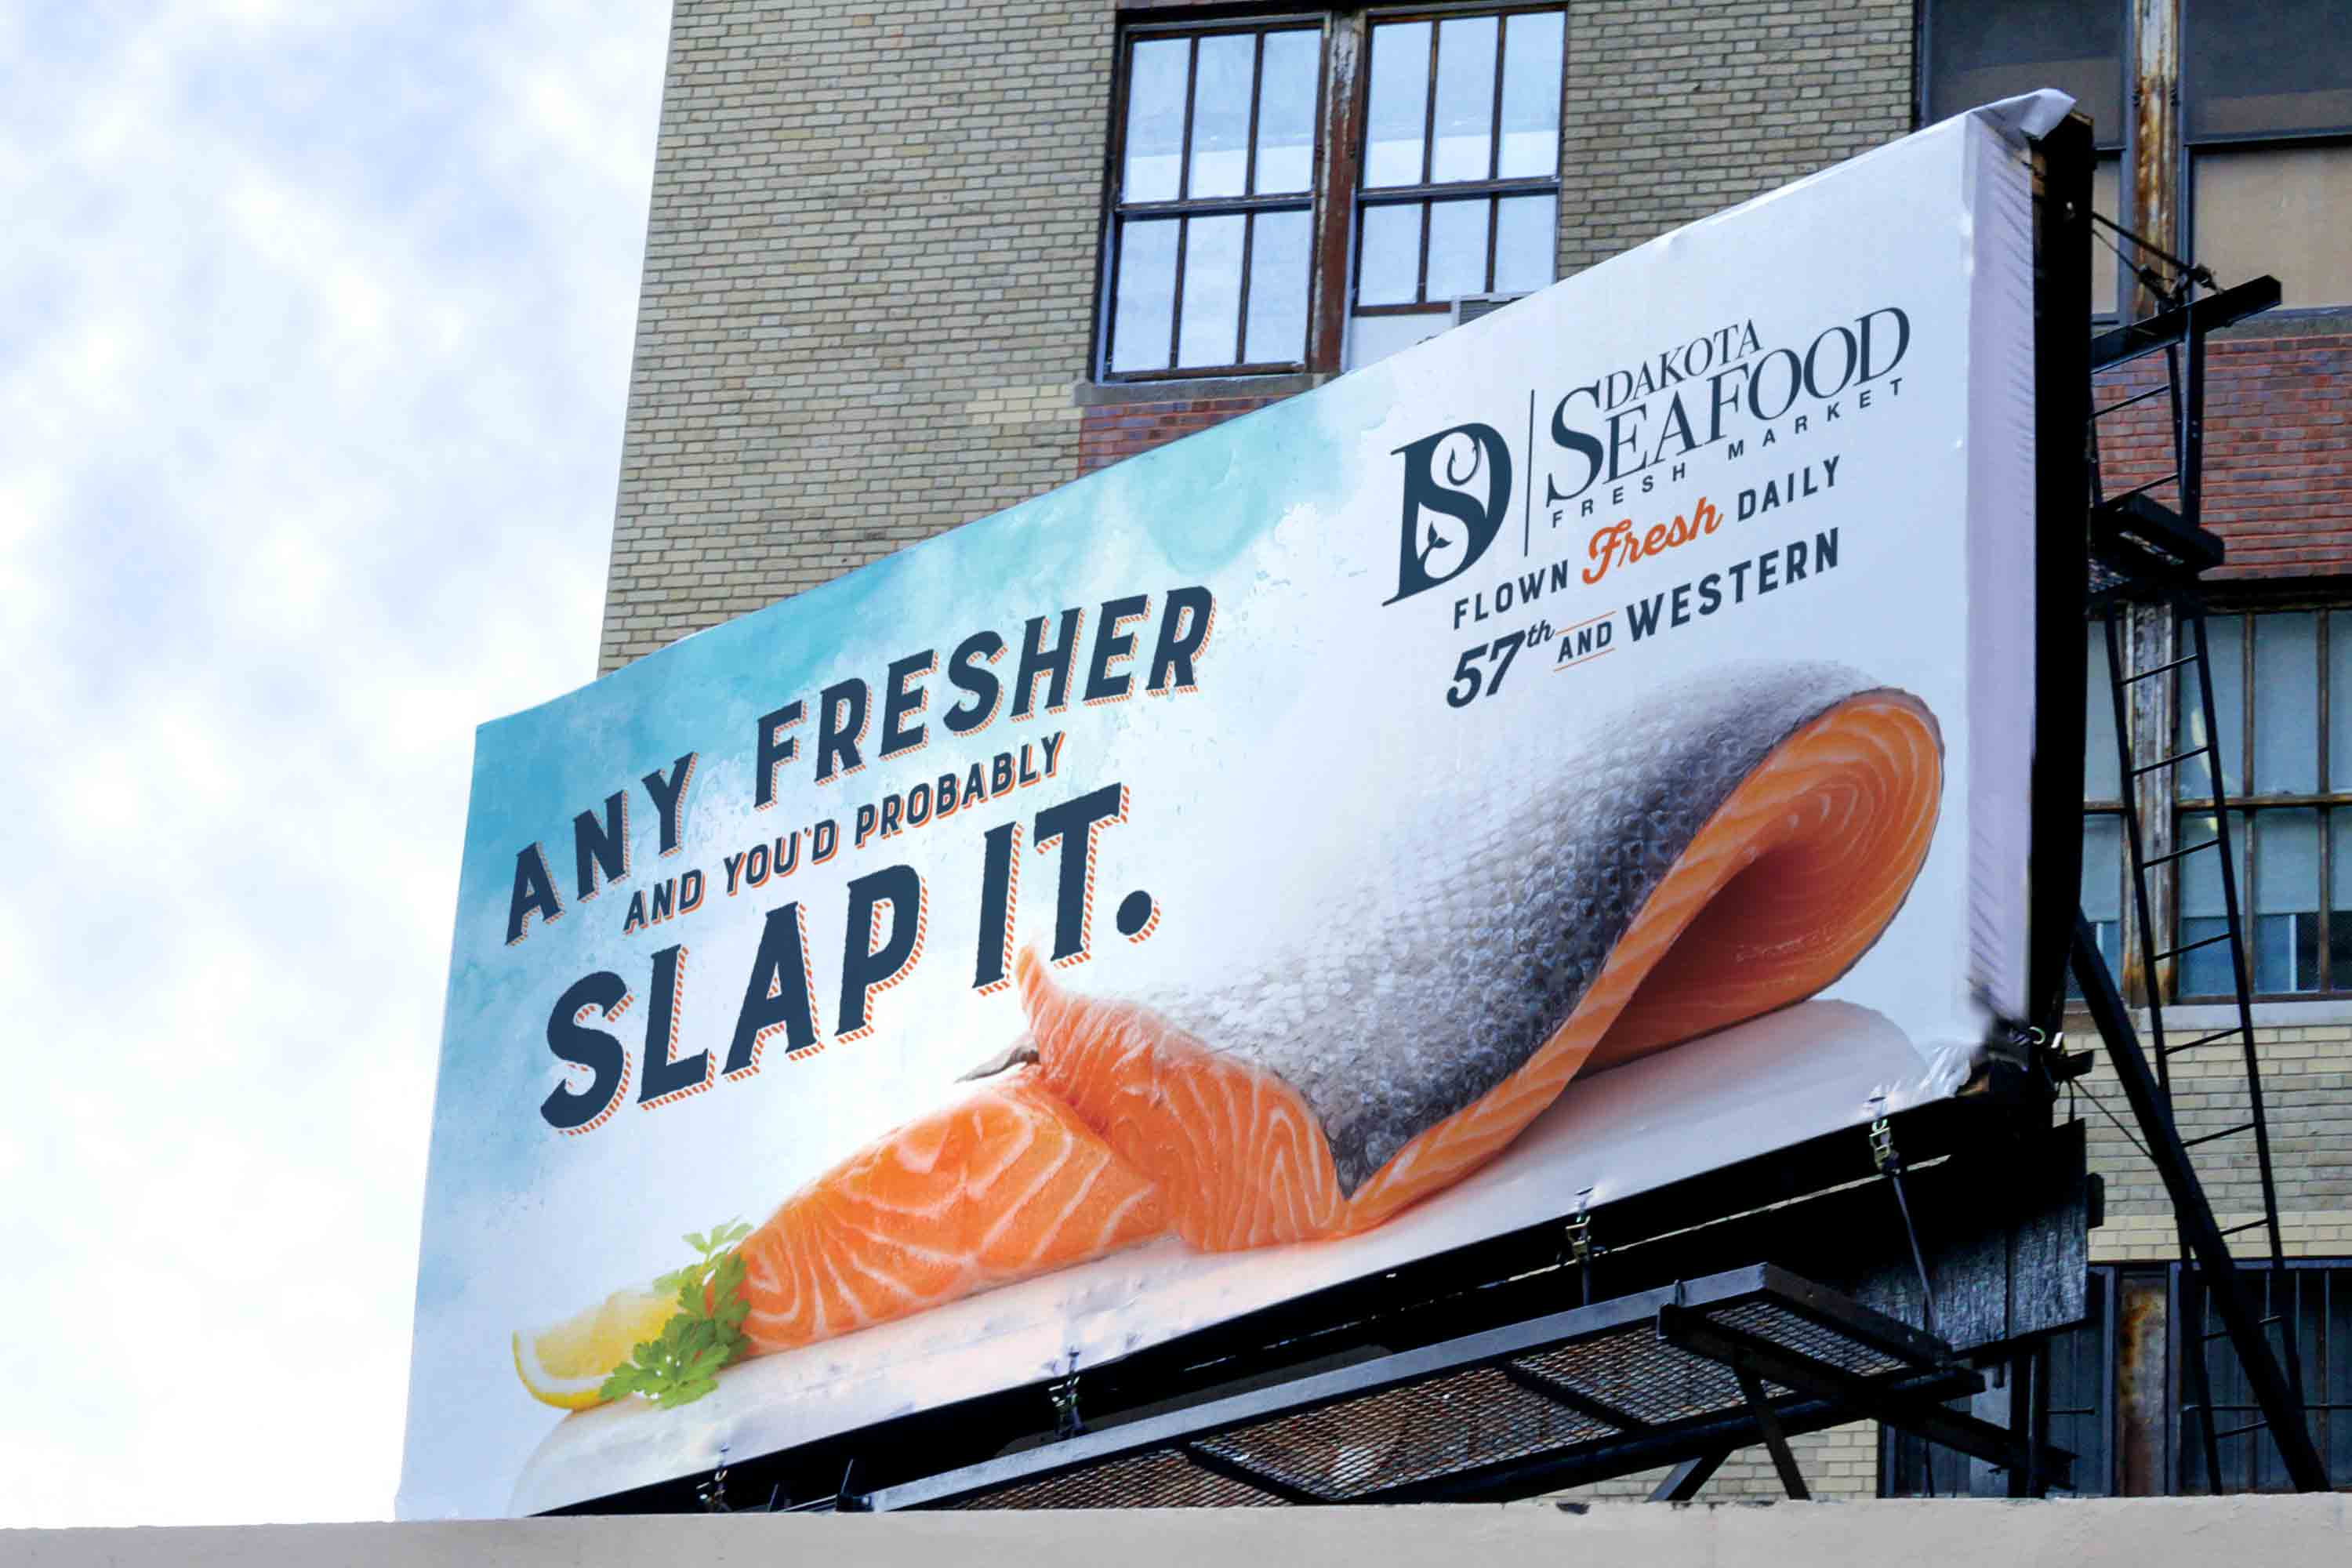 Billboard | Dakota Seafood